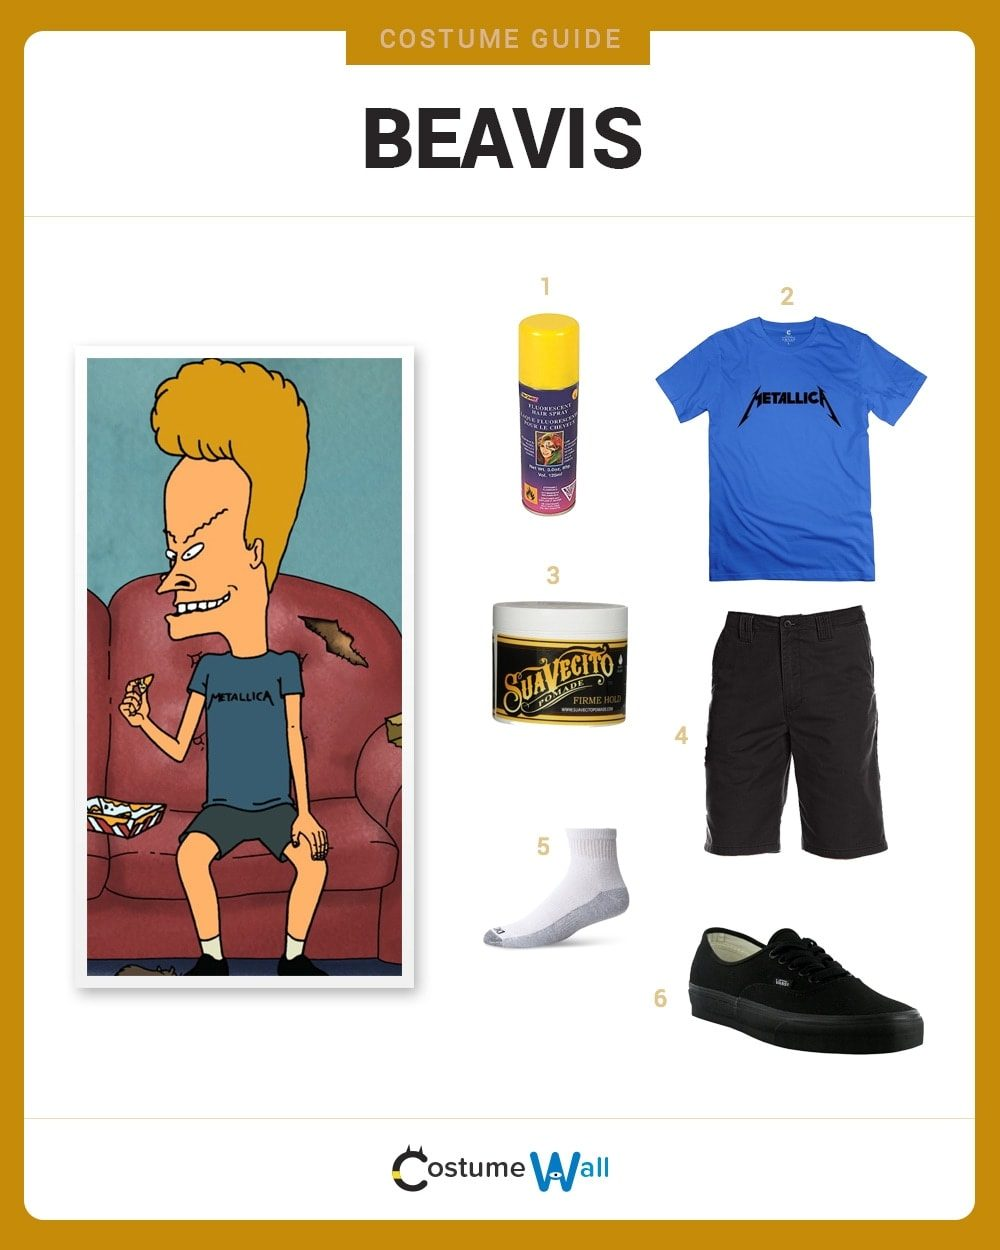 dress like beavis costume | halloween and cosplay guides